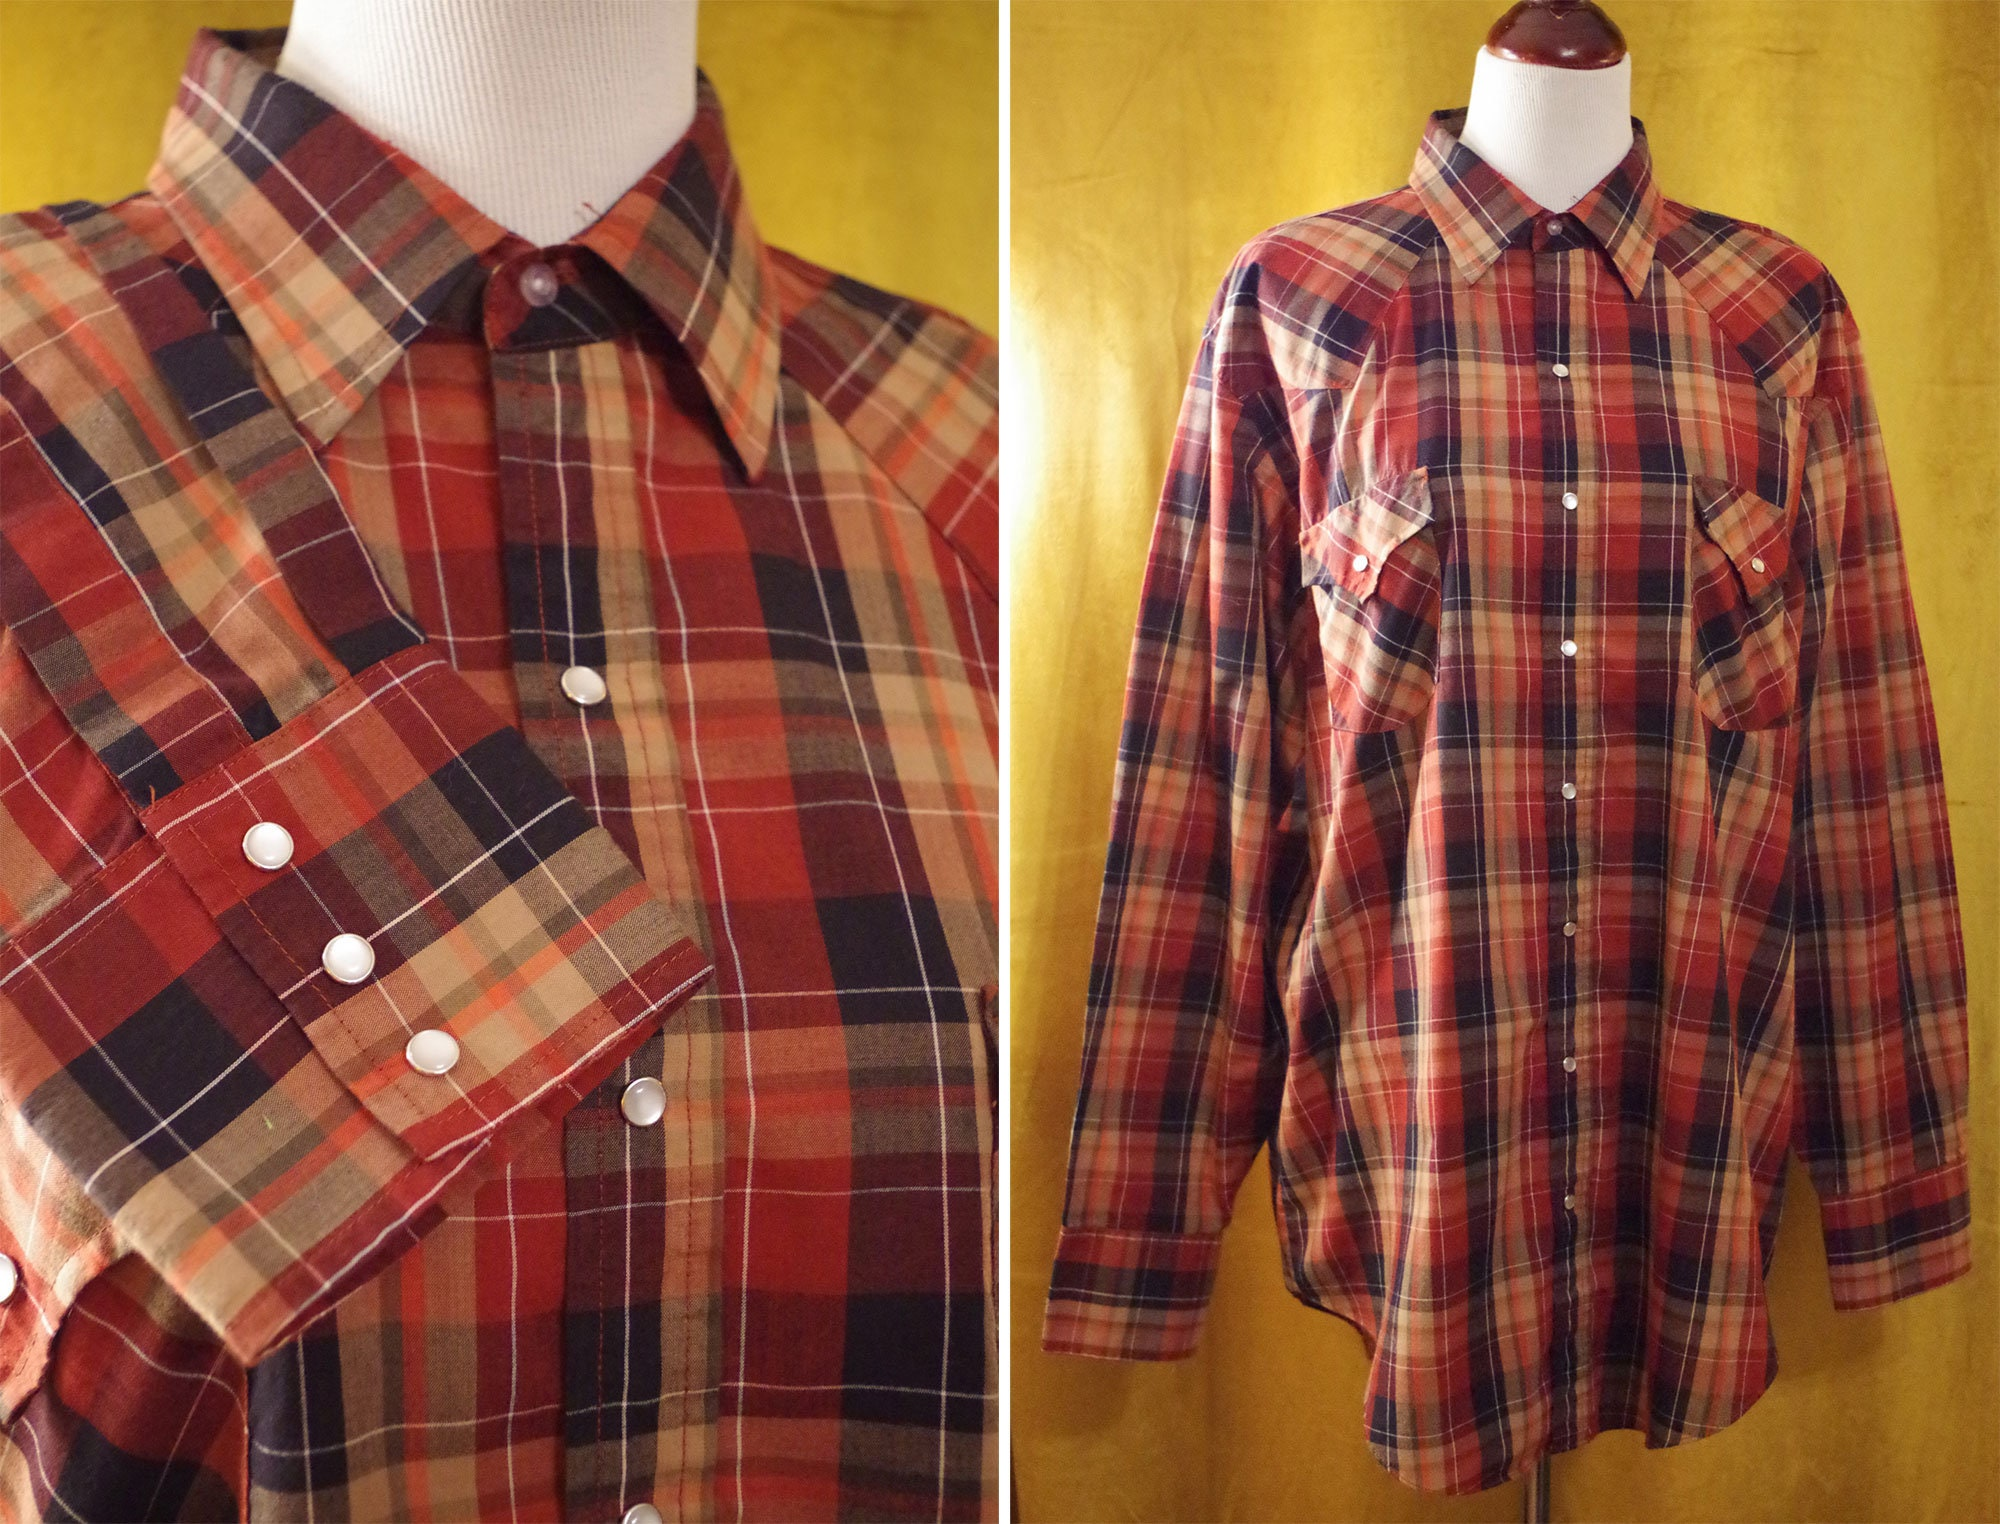 1970s Men's Shirt Styles – Vintage 70s Shirts for Guys Western 1970s Vintage Mens Burgundy Maroon  Brown Plaid Cowboy Shirt with Long Sleeves Pearl Snaps  Ely Cattleman Size Xl Large Tall $44.99 AT vintagedancer.com